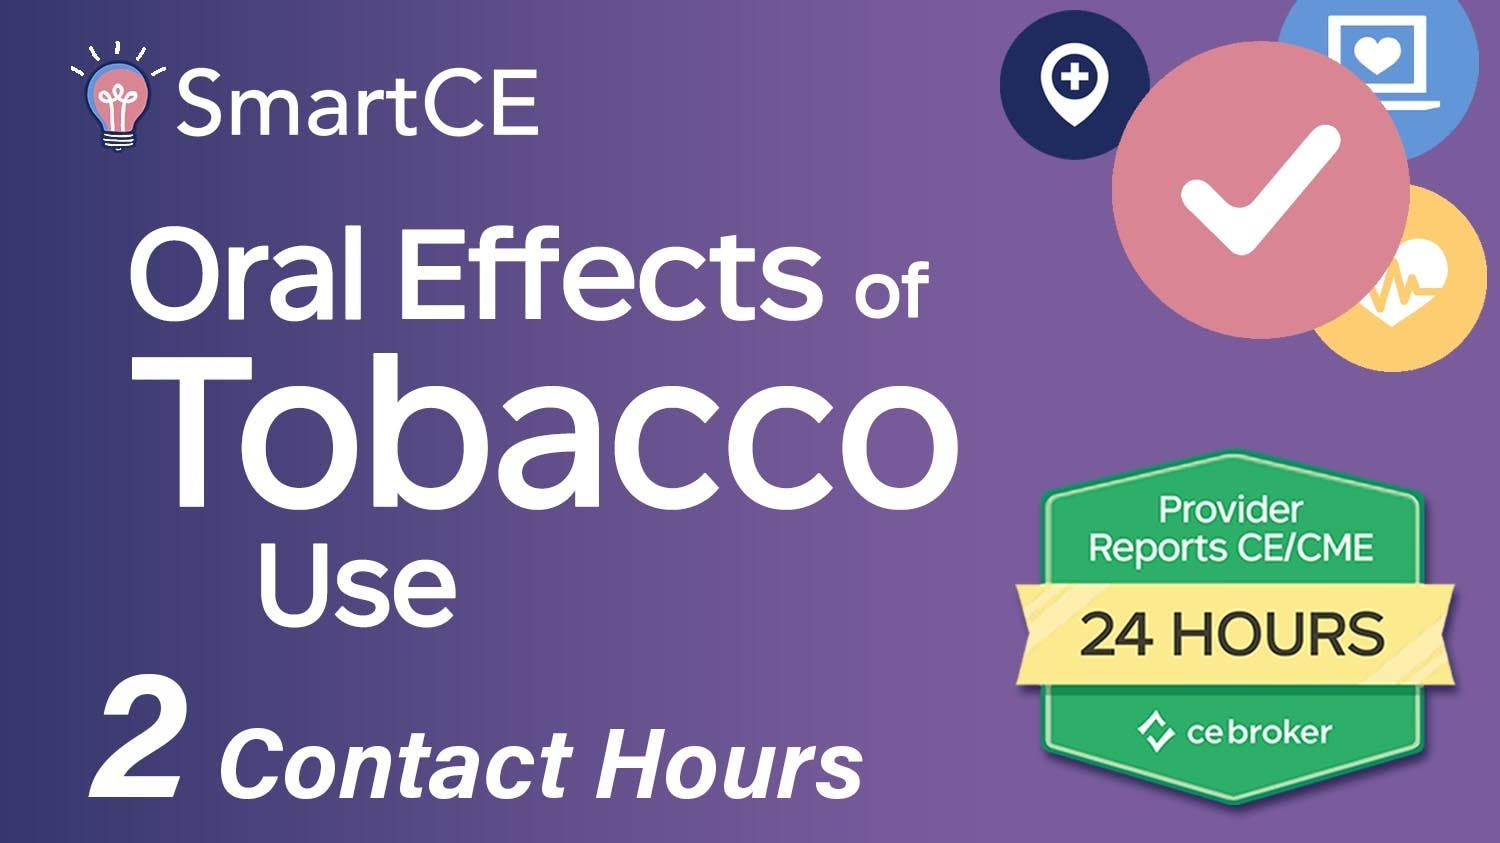 Oral Effects of Tobacco Use - 2 Contact Hours /20-757538